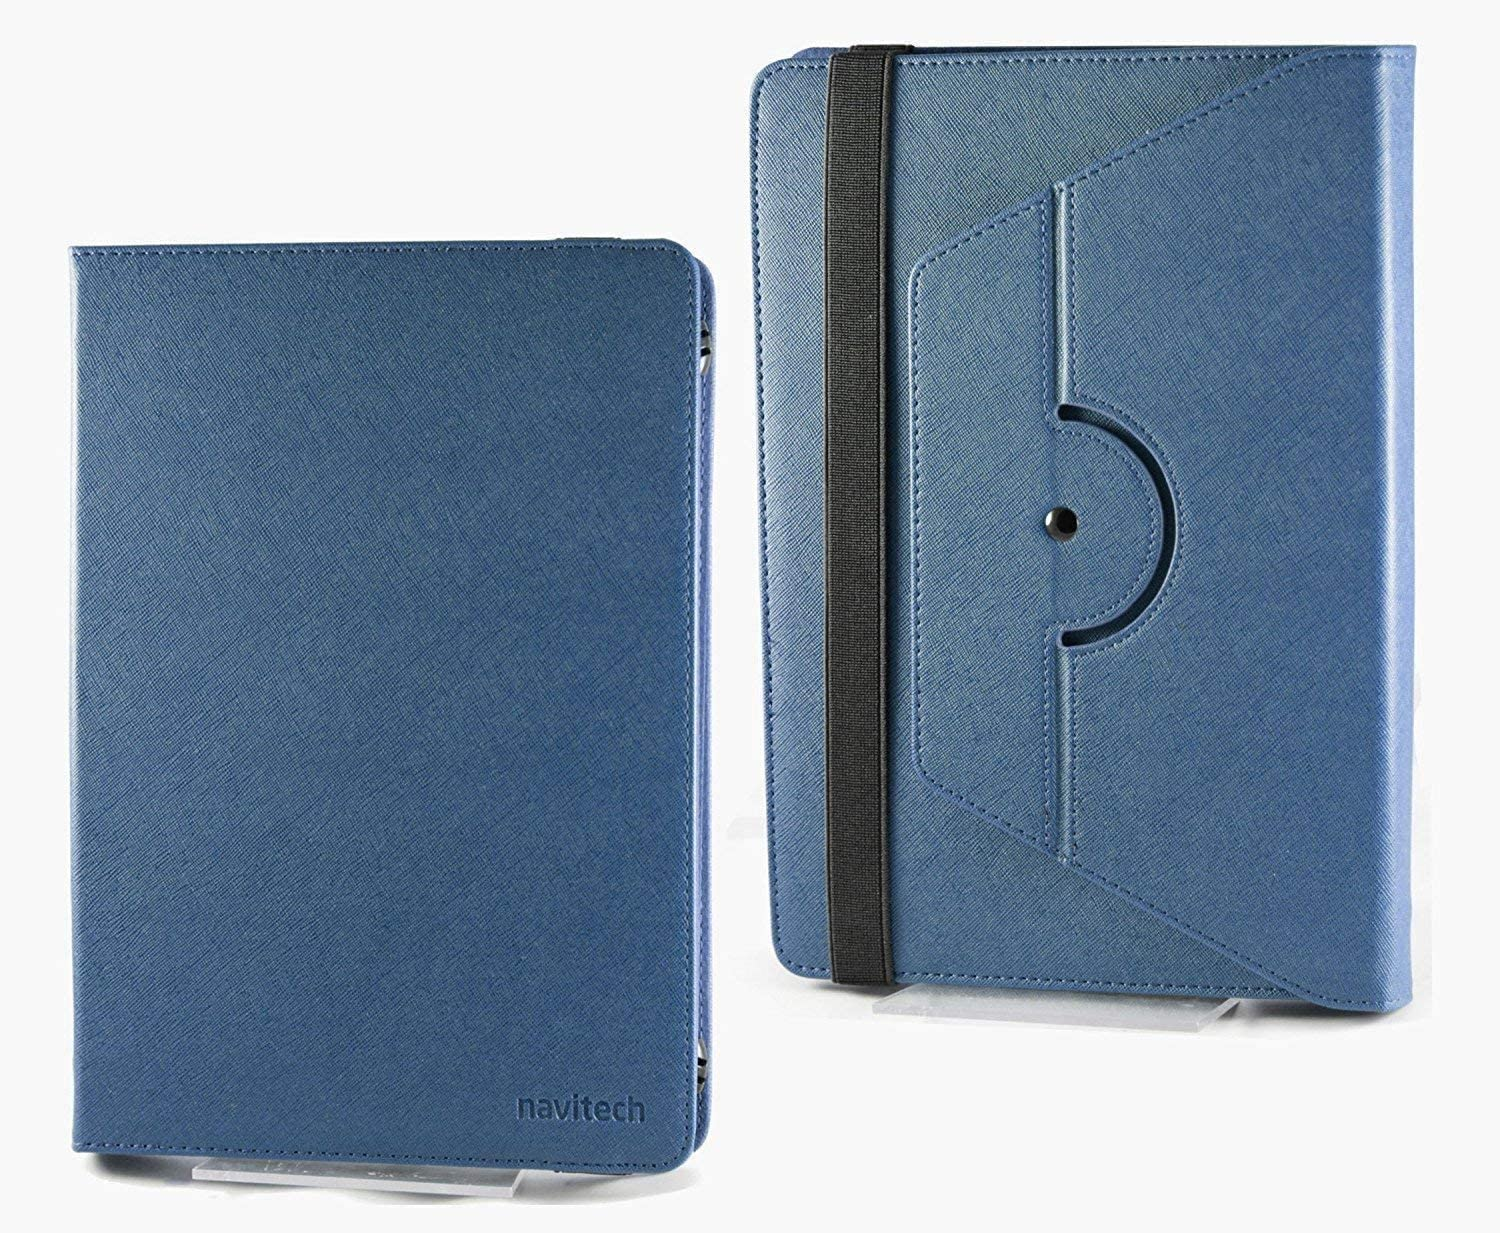 Navitech Blue Leather Tablet Case /& Stylus Compatible With ACER/ACTAB1021 10 Tablet